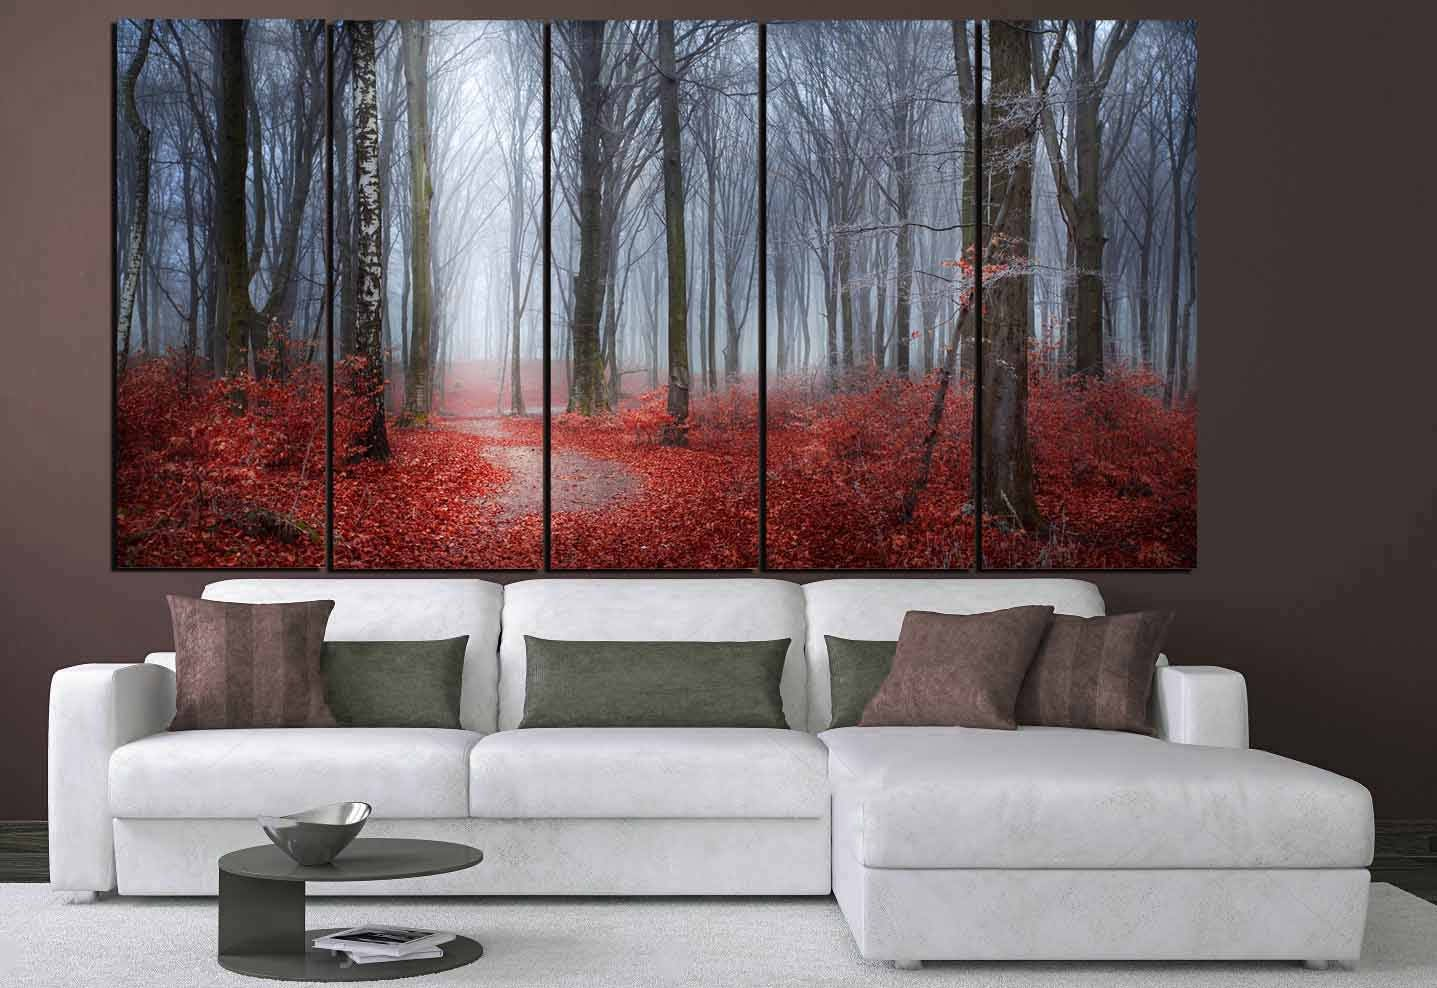 Nature Wall Art,Red Leaves Blue Mist Art,Red Leaves Forest,Nature Scenery